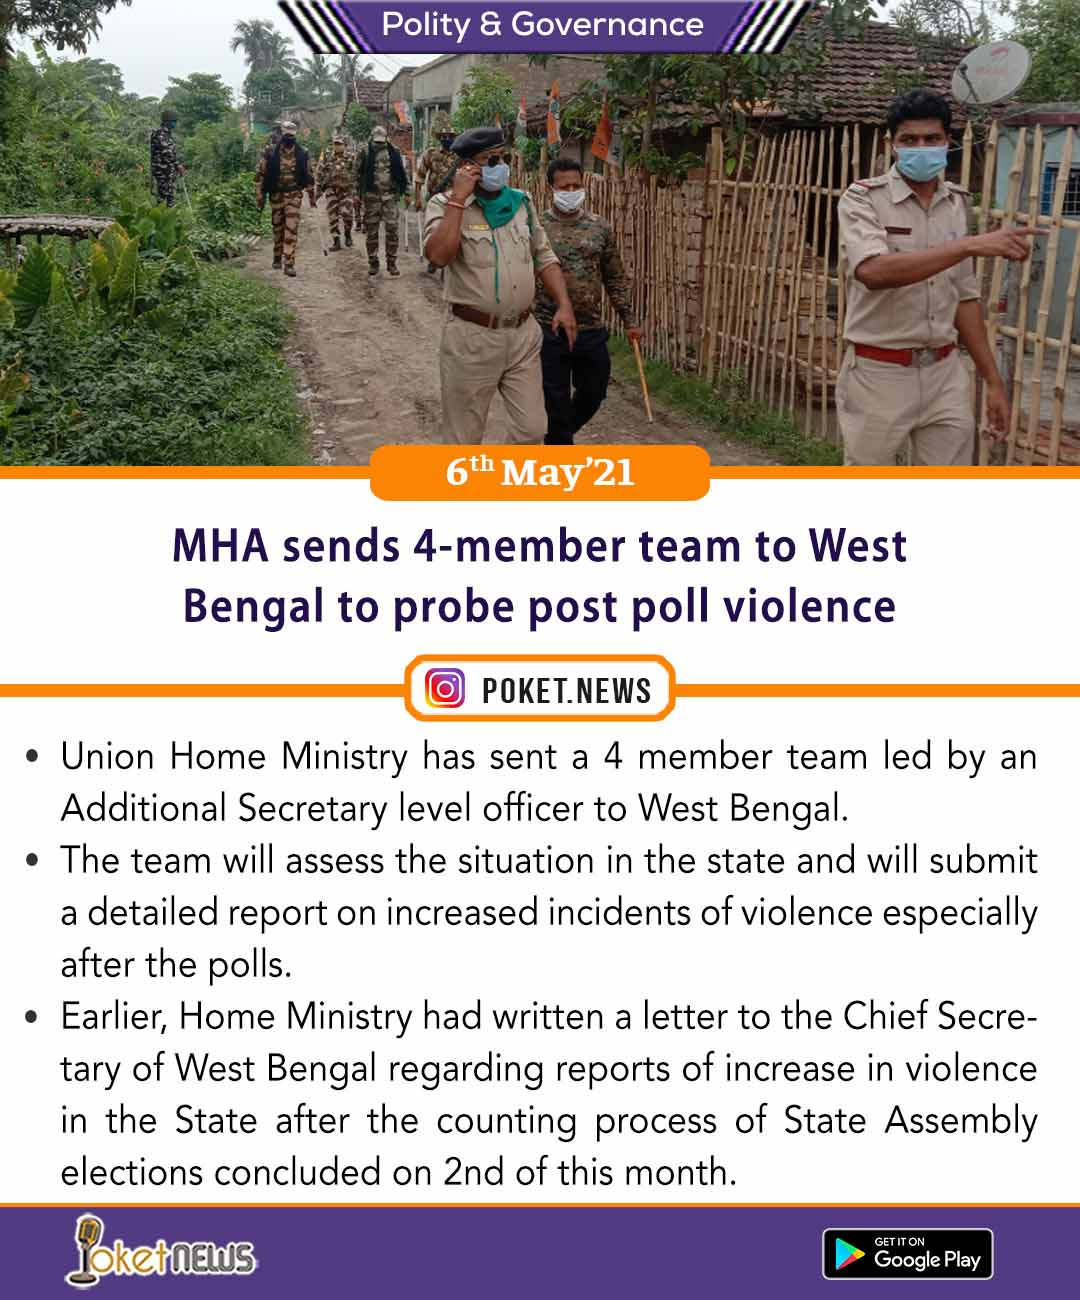 MHA sends 4-member team to West Bengal to probe post poll violence